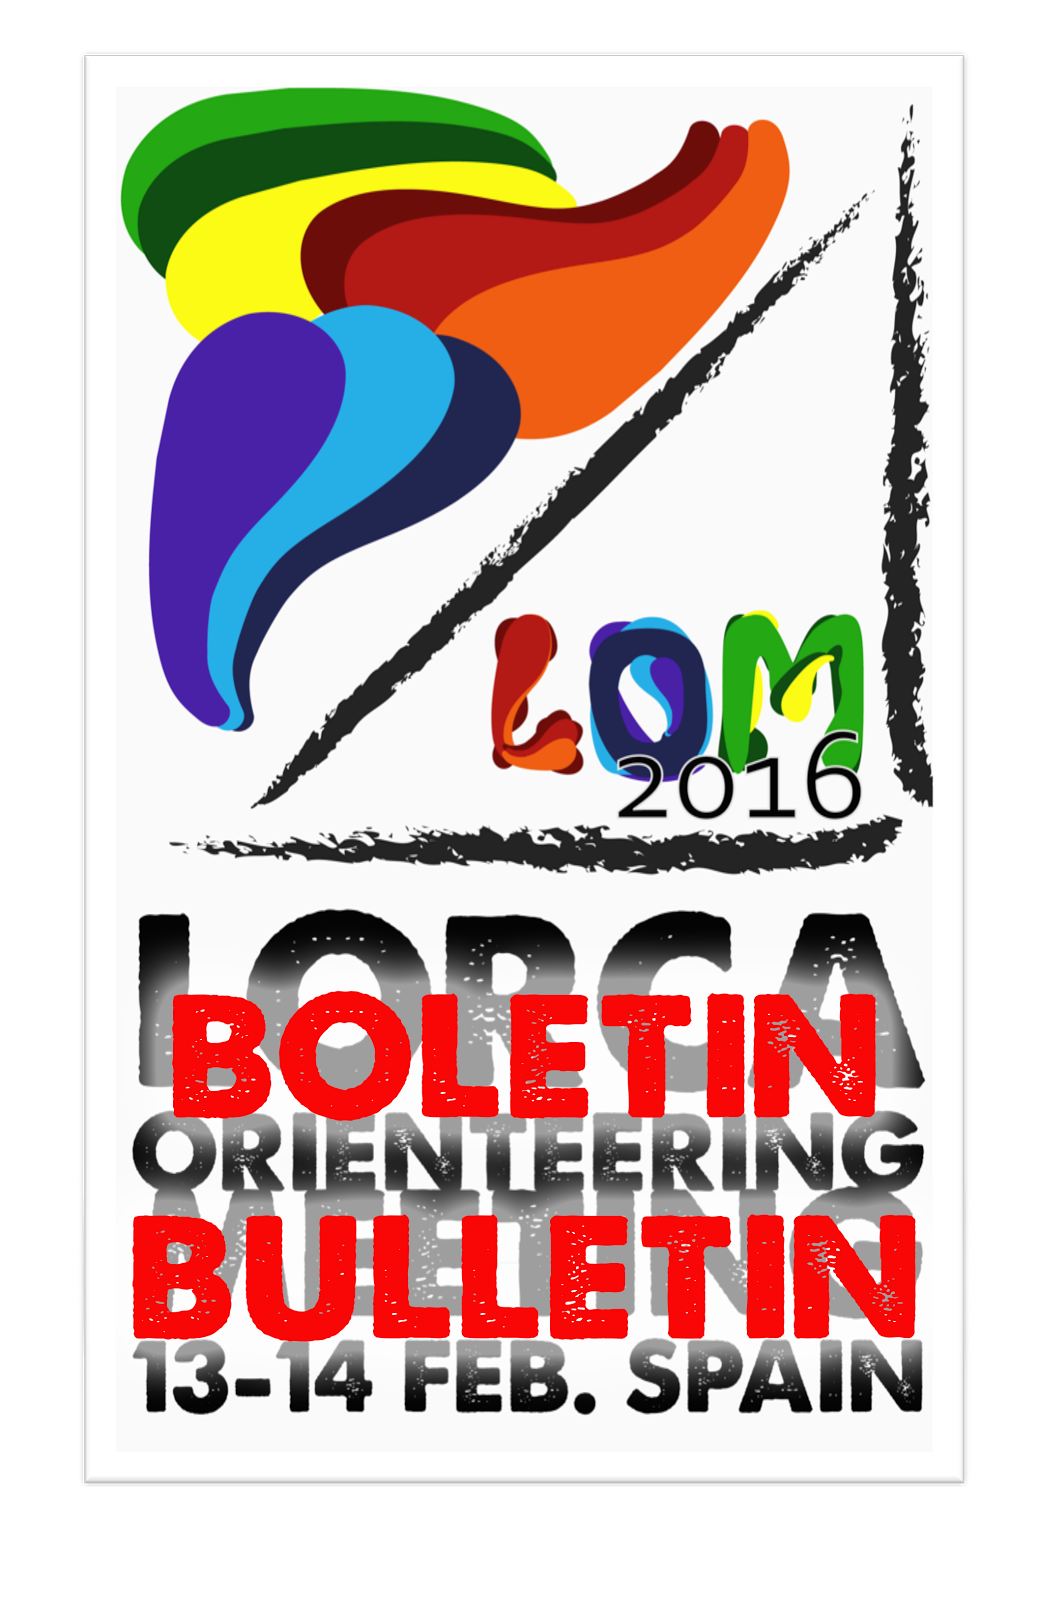 BOLETÍN